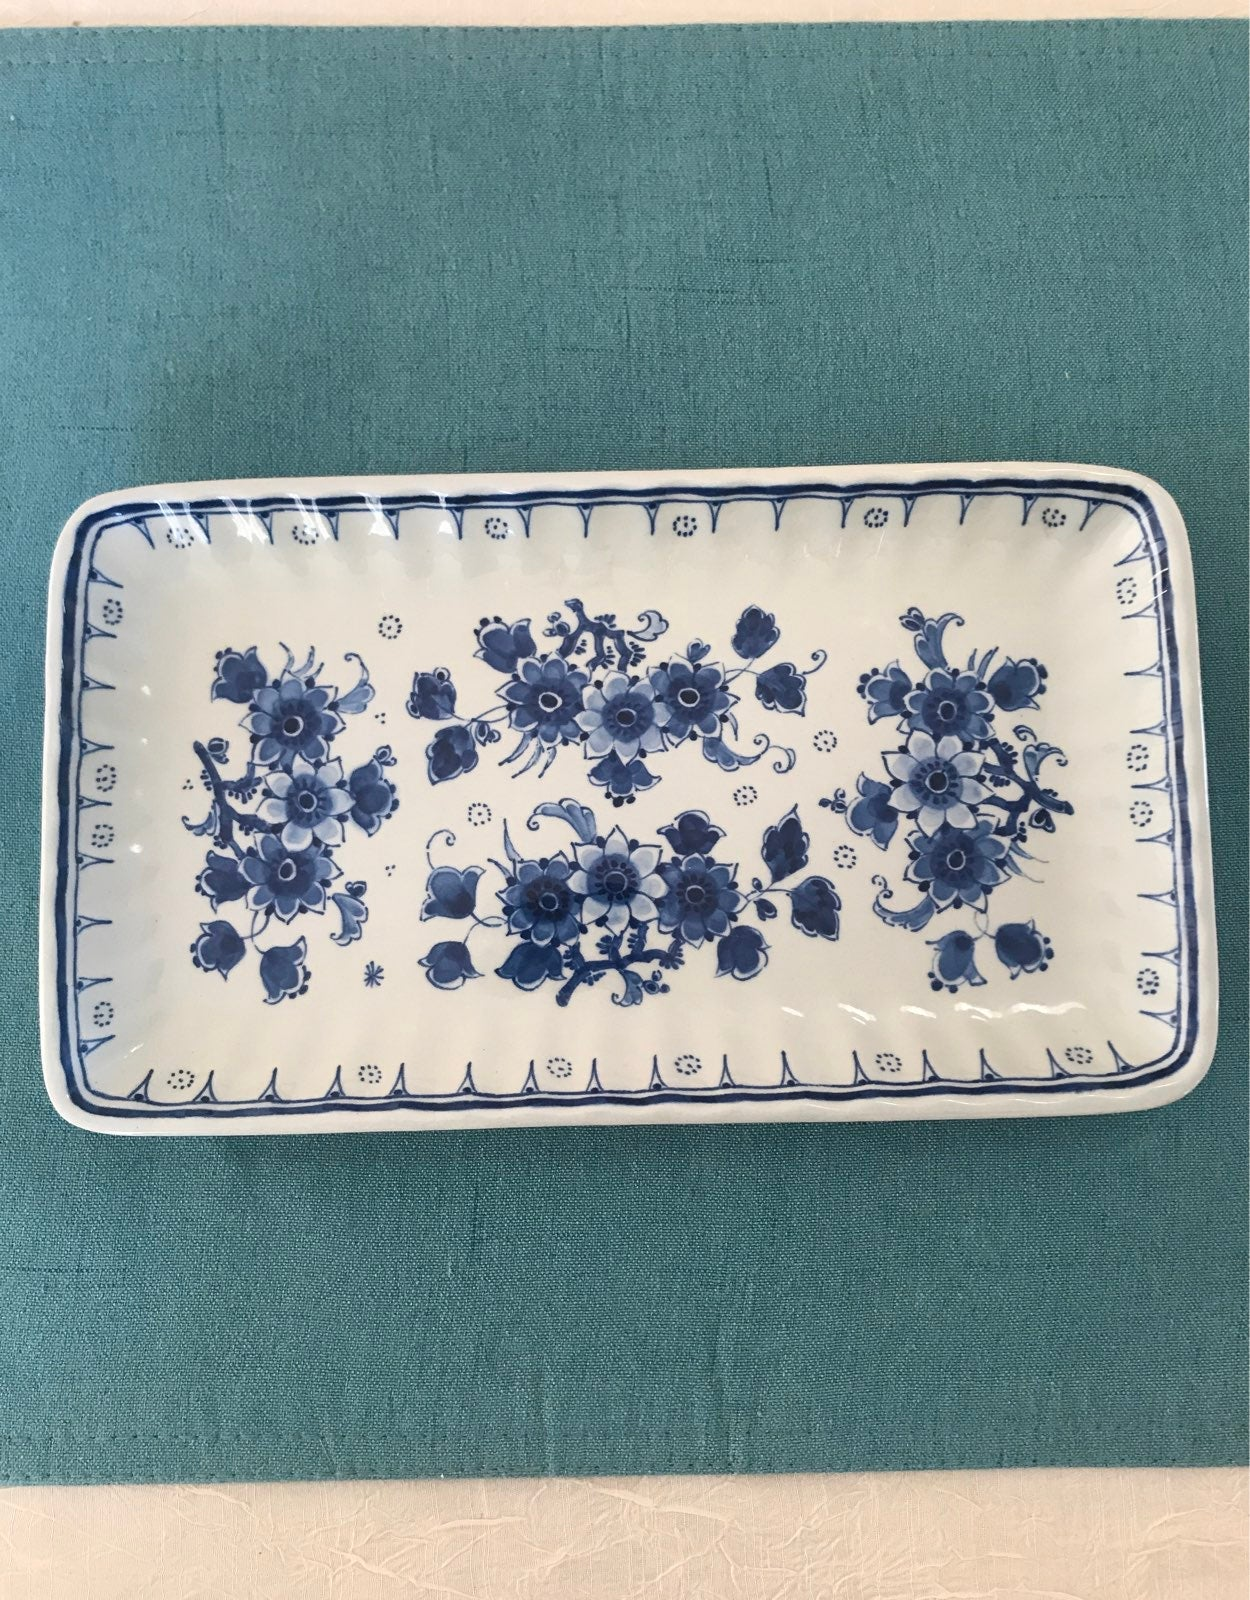 Vintage Porcelain Serving tray by Delft